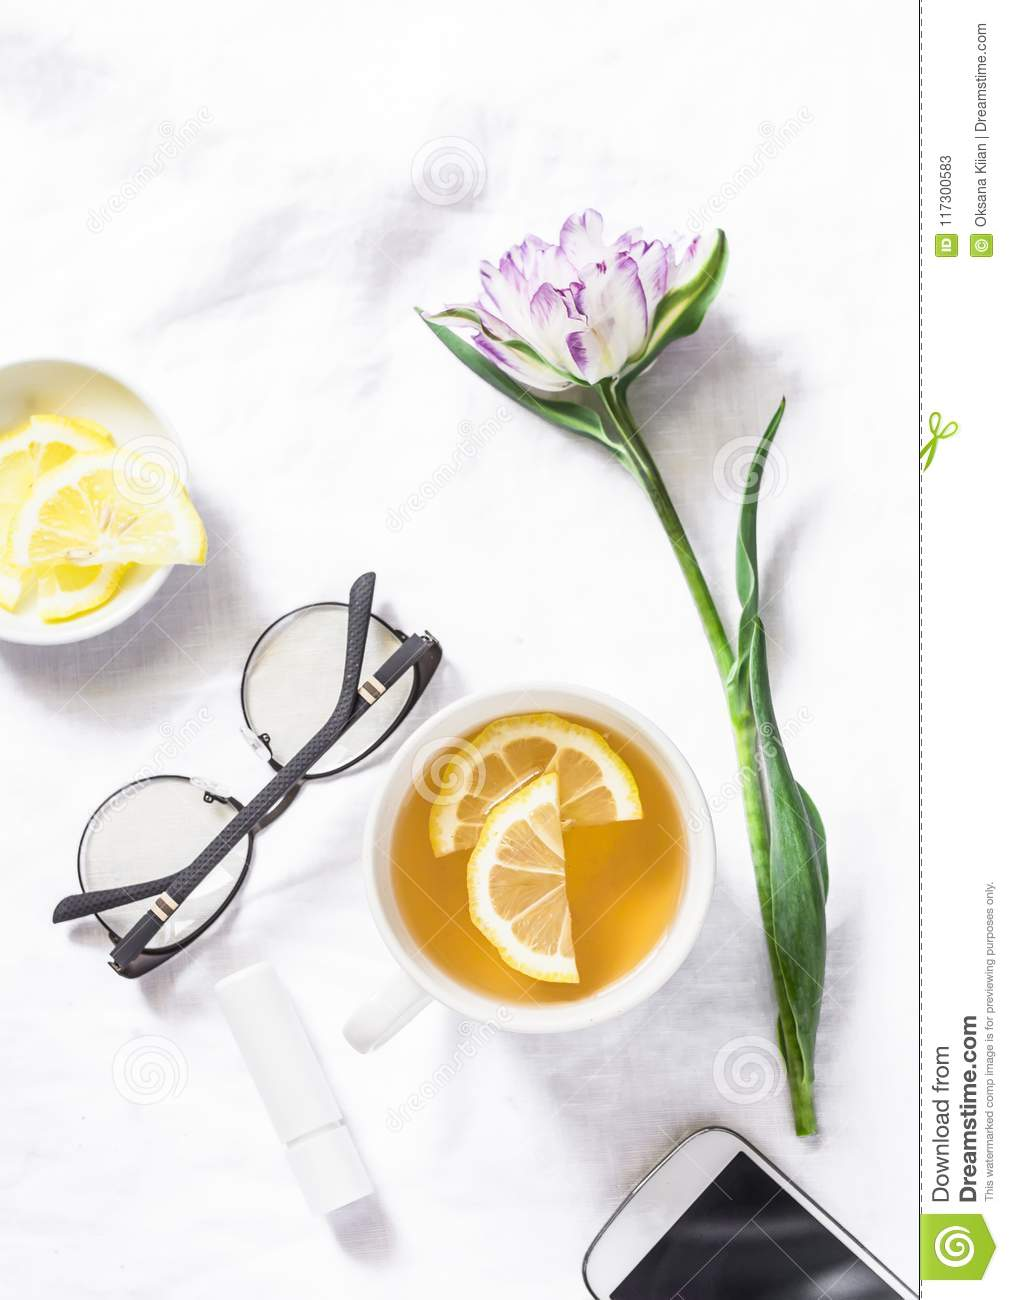 Green Tea With Lemon Tulip Flower Headphones Smartphone Free Relax Time Still Download Preview